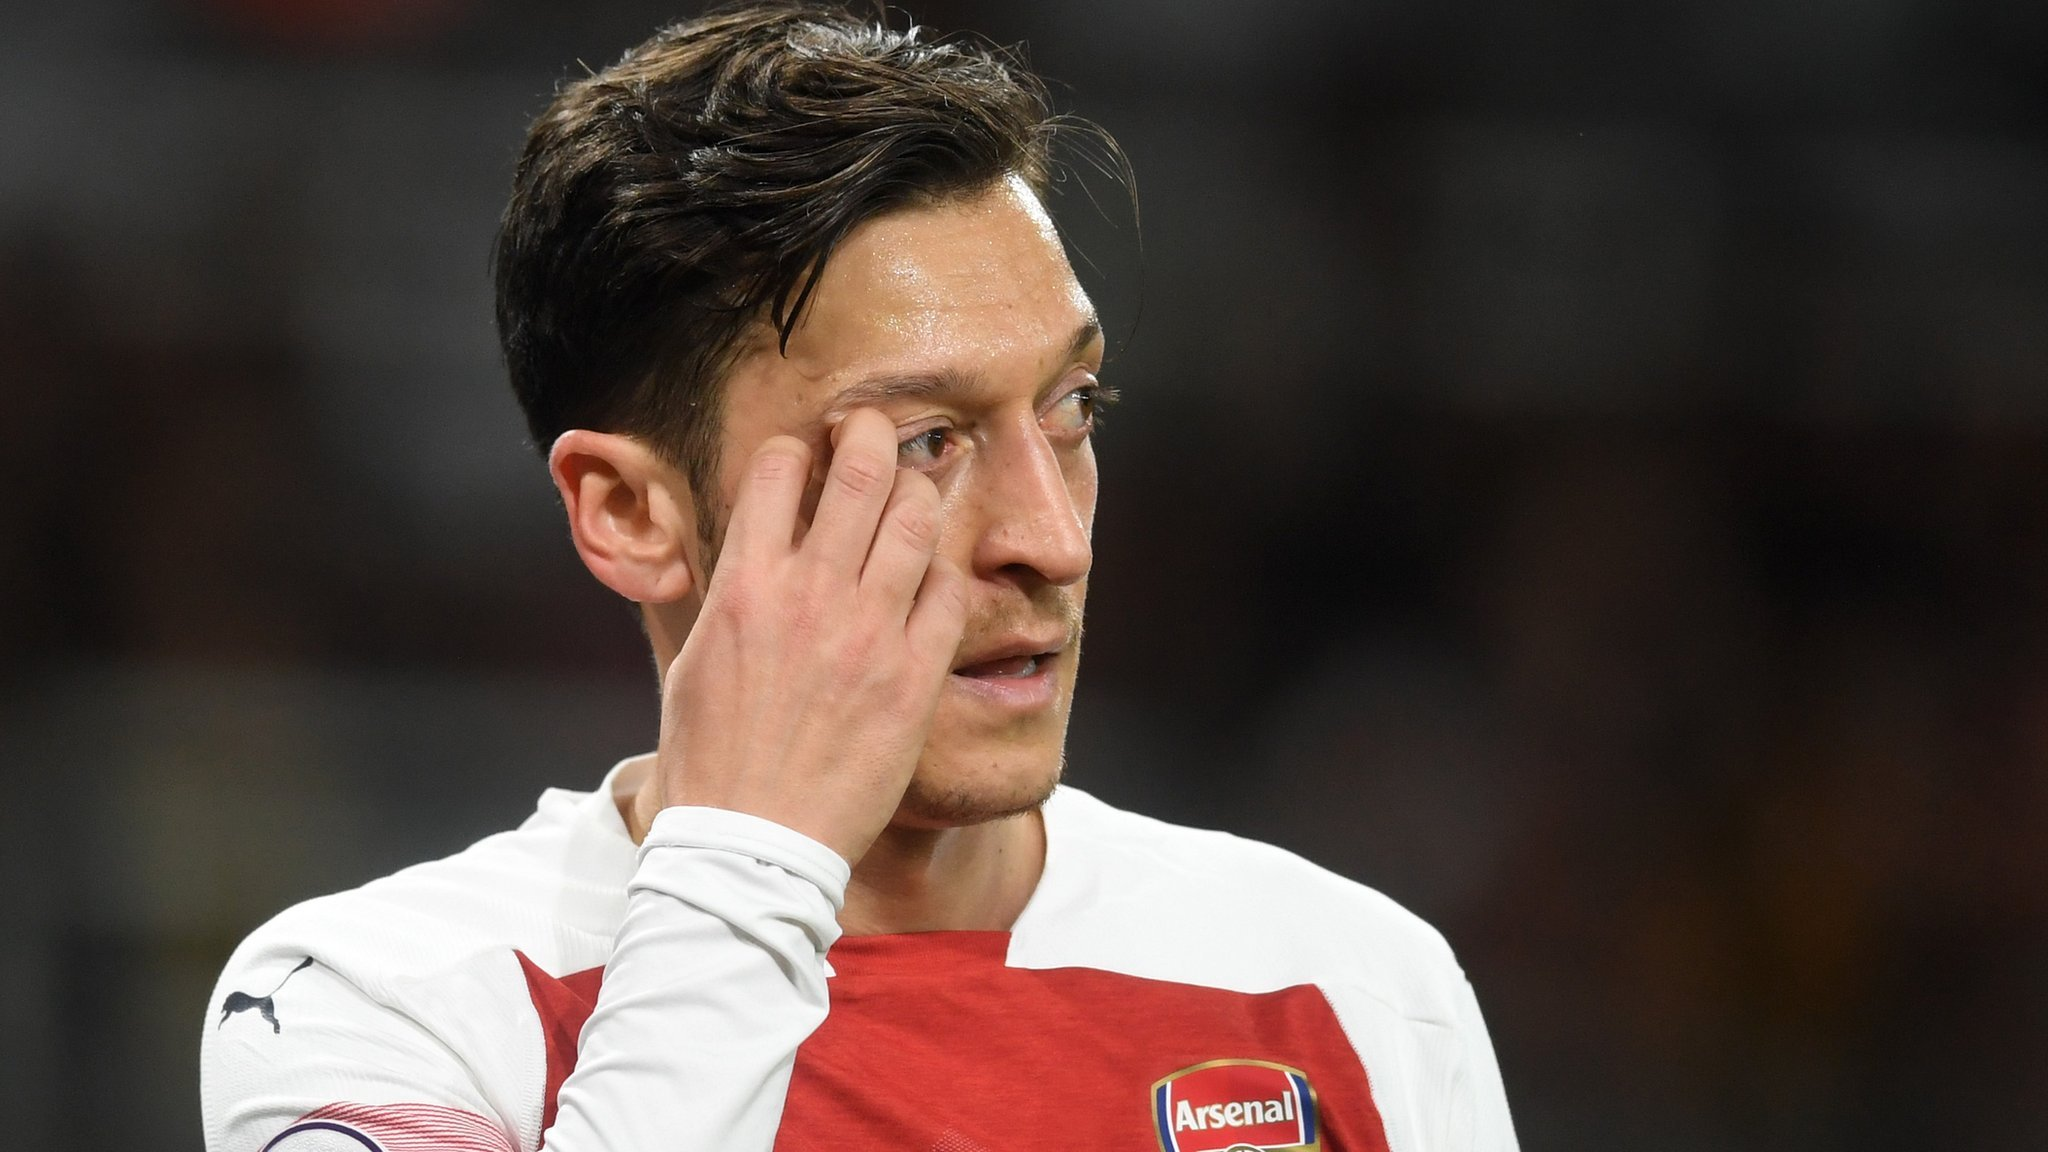 """Mikel Arteta has given the clearest indication yet that Mesut Ozil will not see much action in the upcoming season, saying it is difficult to see where the German midfielder will fit in his """"evolving"""" squad."""